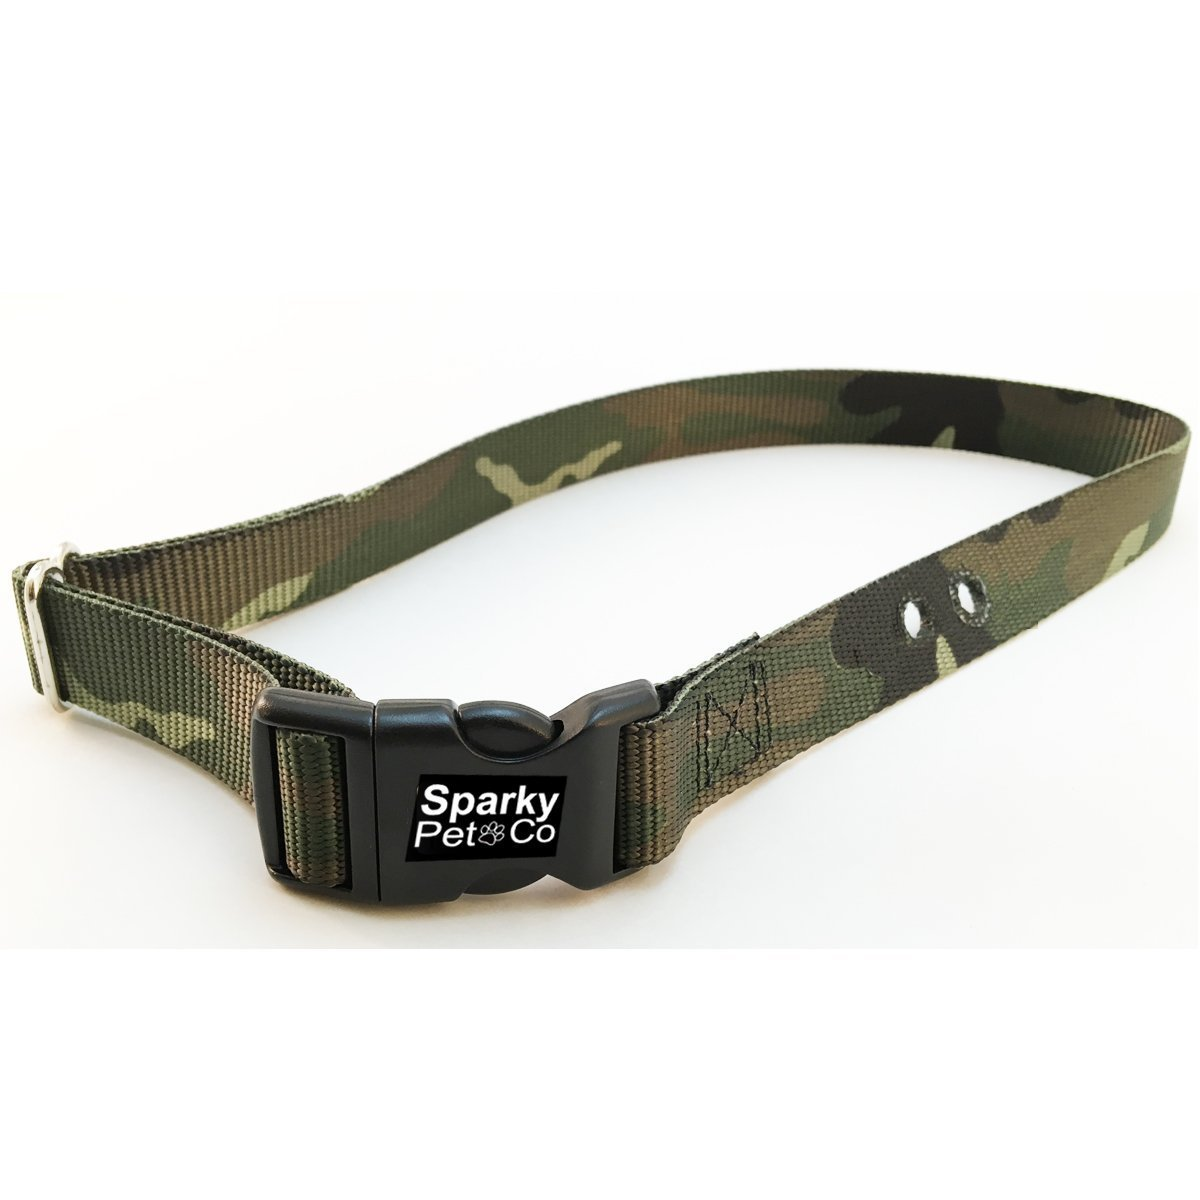 Sparky PetCo invisible Fence Compatible Brand Dog Fence Systems, Camo Green